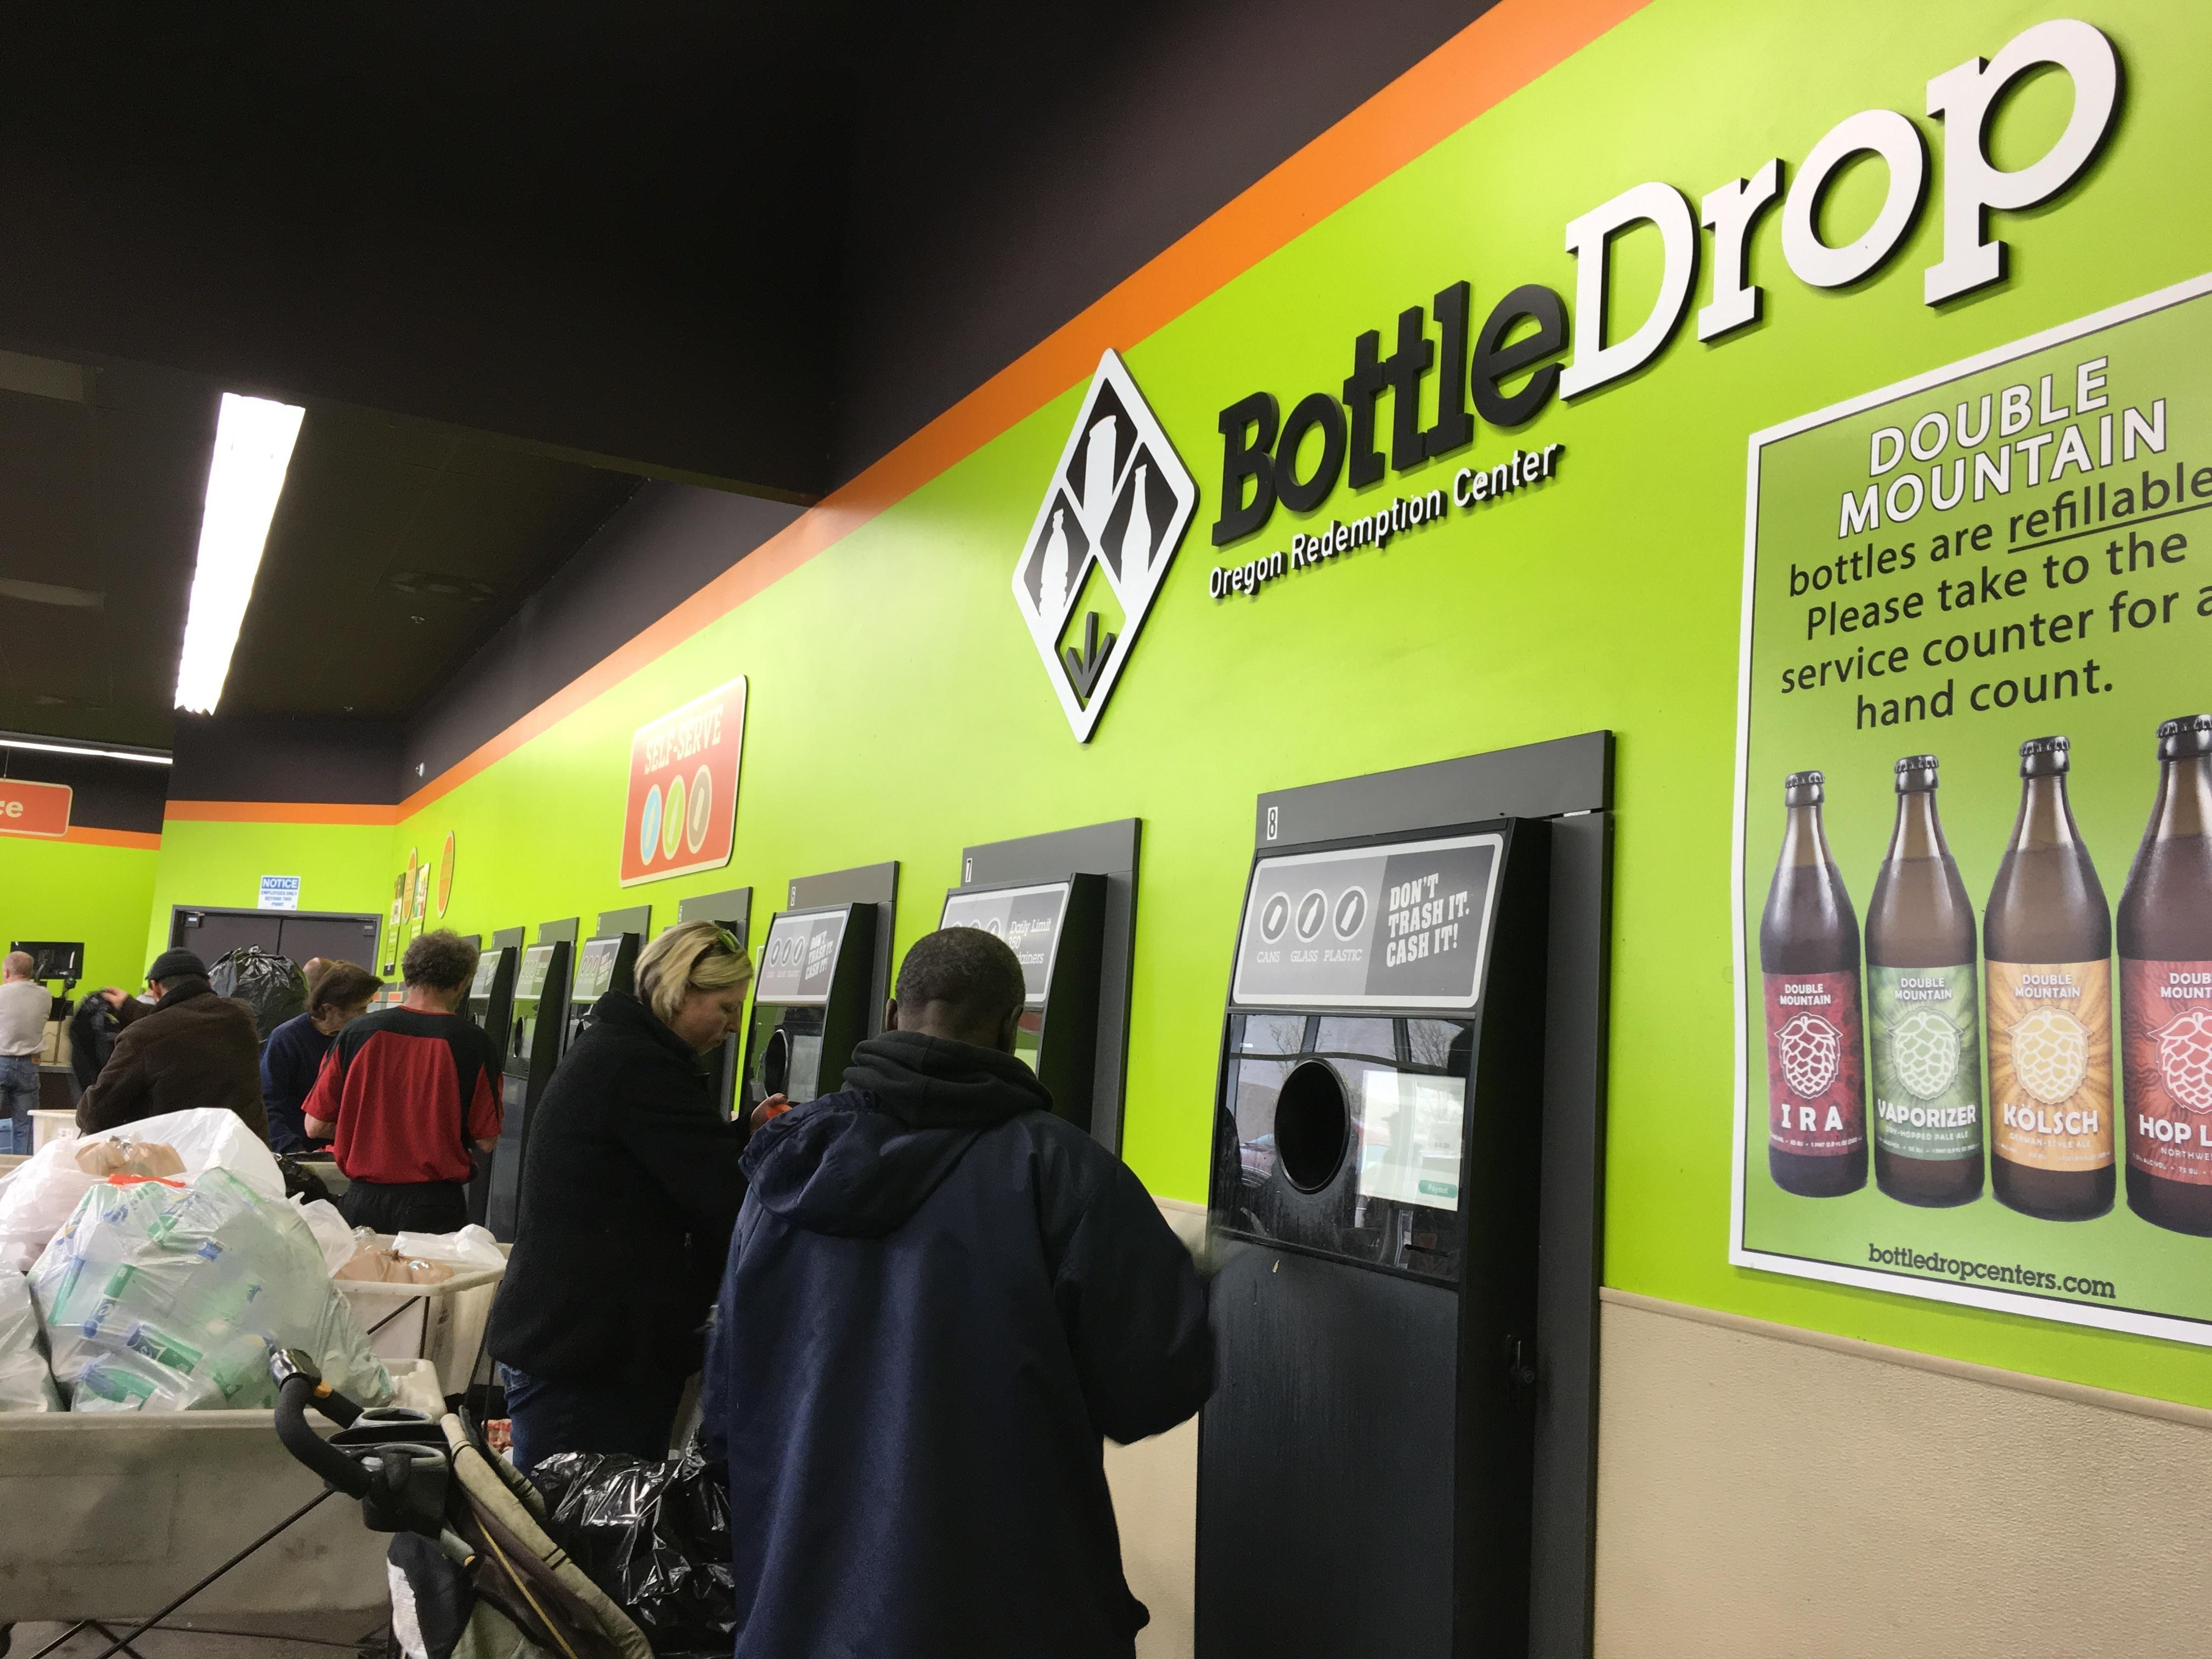 Oregon residents formed steady lines at a BottleDrop recycling redemption center in Portland, Ore., on Saturday, April 1, 2016, the first day the refund rate for empty water bottles, beer bottles and soda cans jumped to 10 cents. Oregon was the first state in the nation to give 5-cent refunds for recycling used water bottles and soda cans more than 45 years ago. Now, in an effort to boost recycling, this eco-trailblazing state is doubling that refund. (AP Photo/Kristena Hansen).""